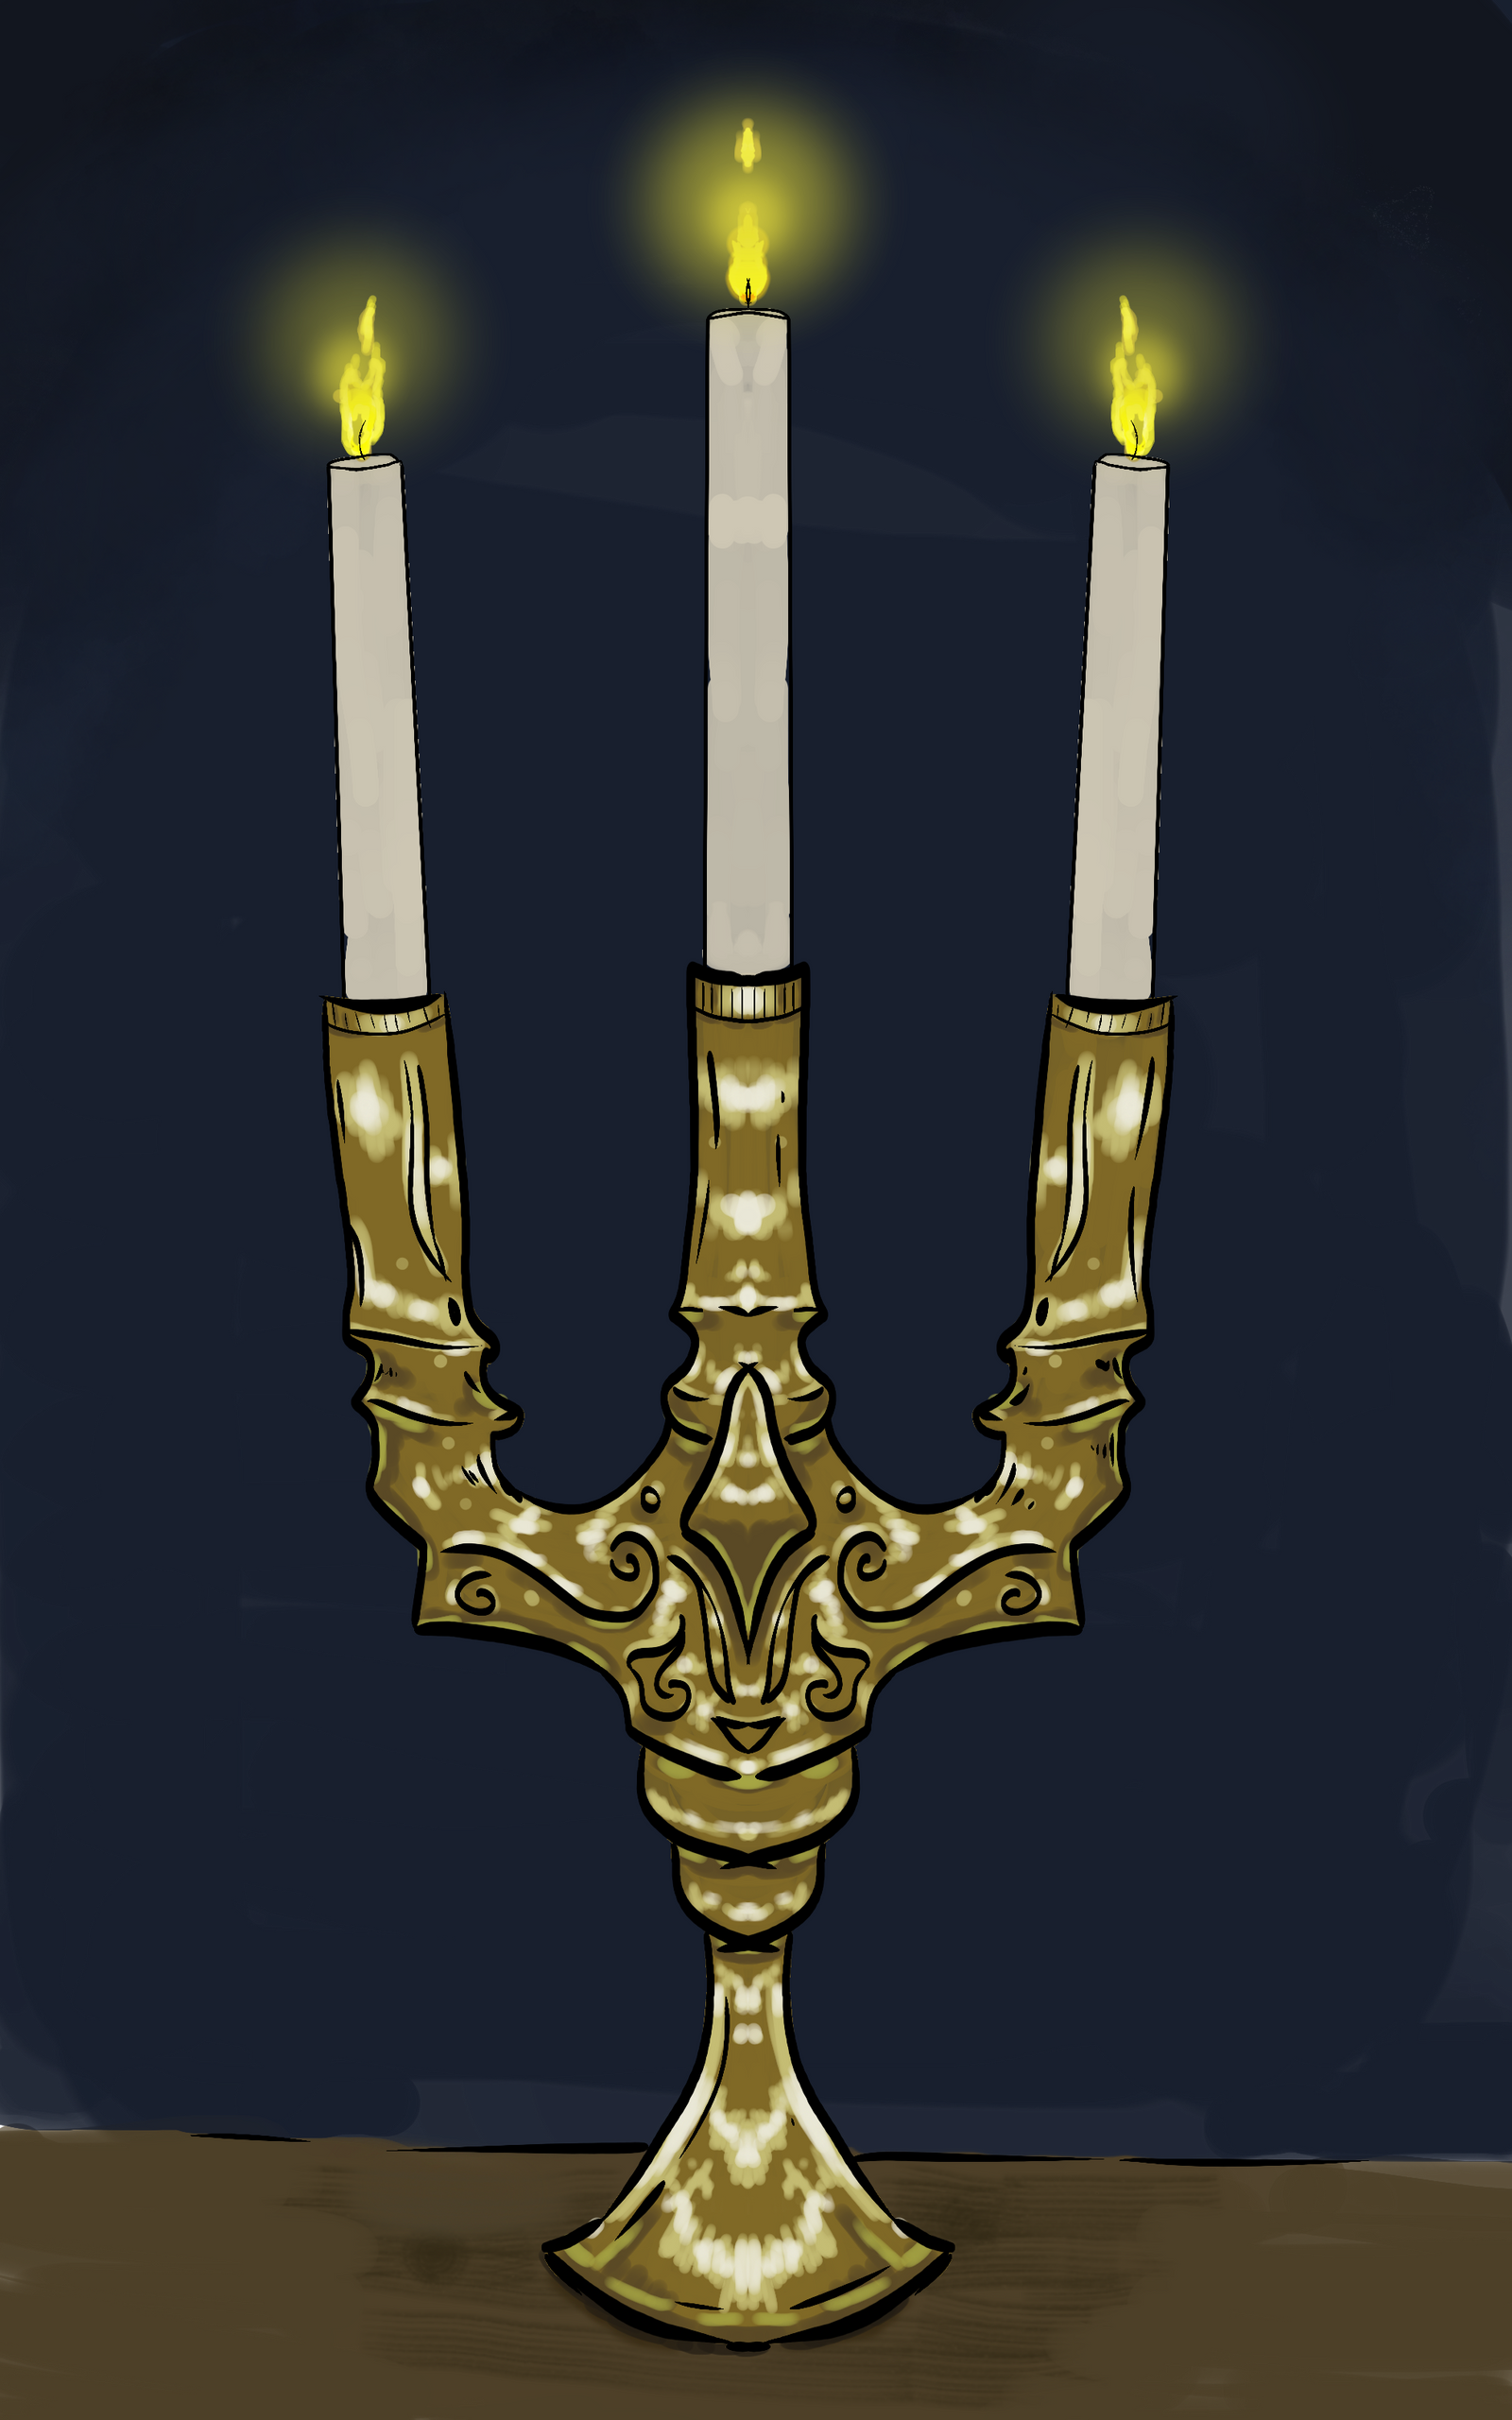 candlestick sketch by ashenmoons on deviantart